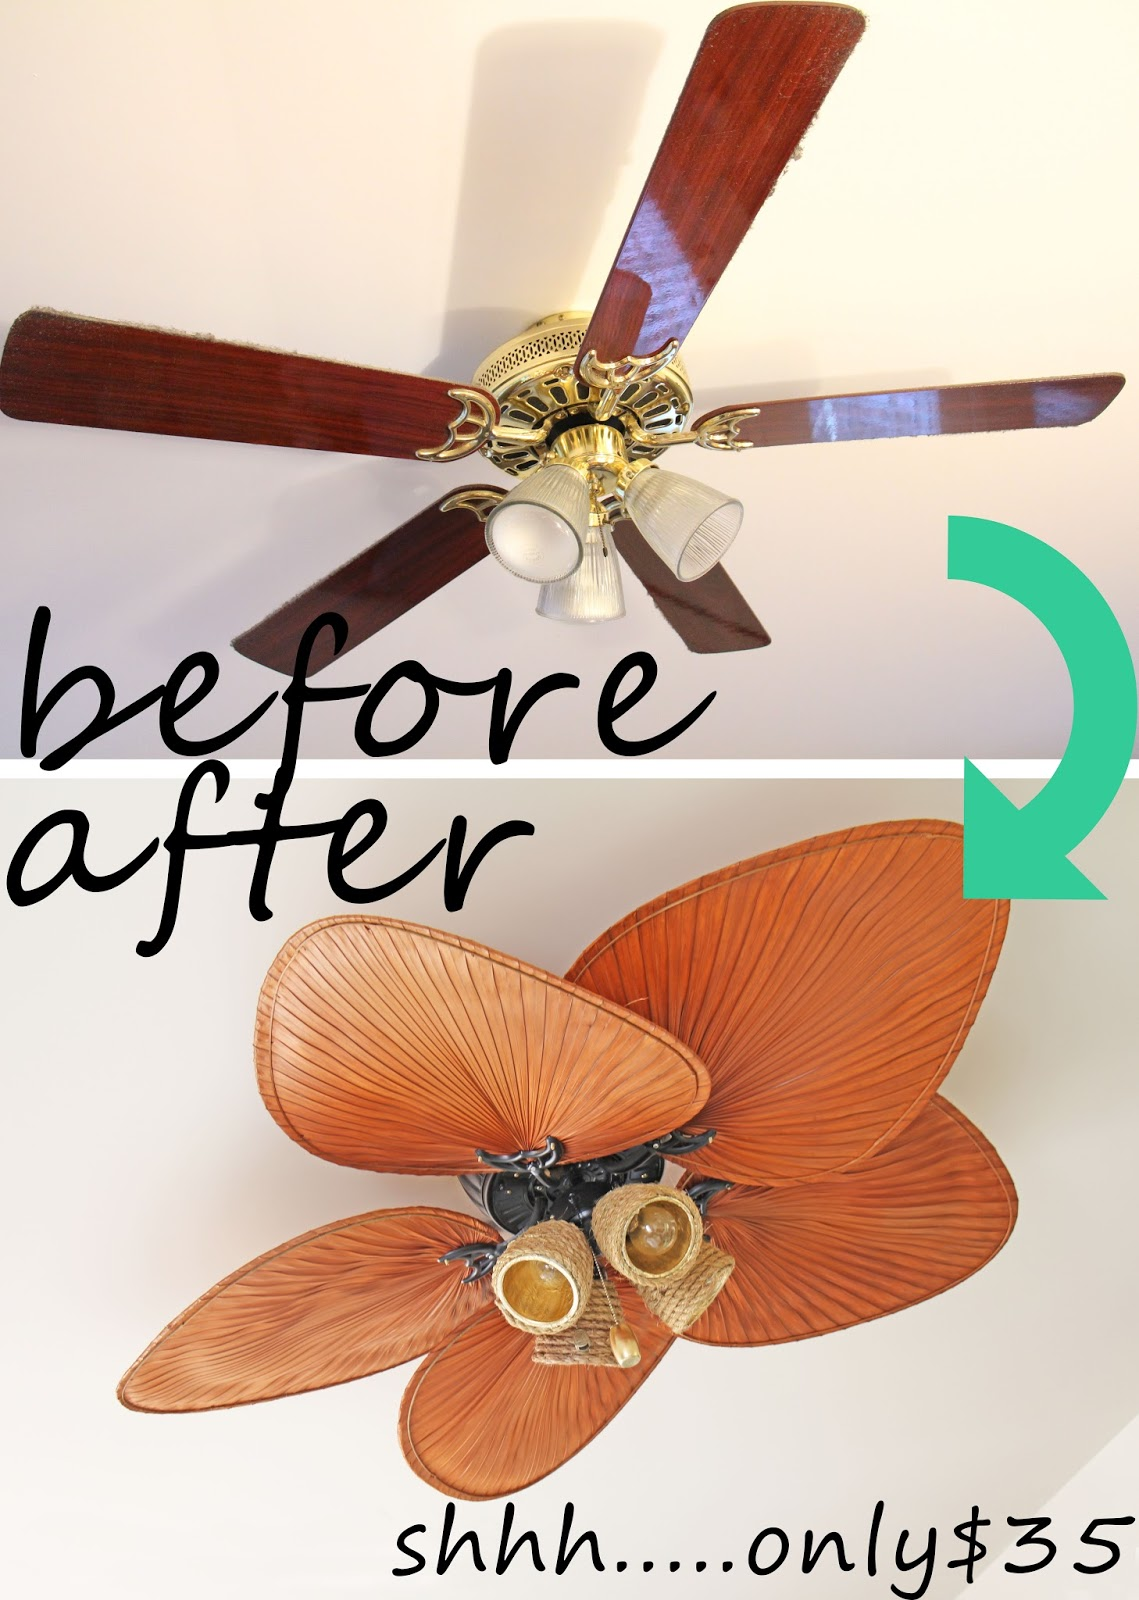 Grosgrain Crazy Amazing Ugly Ceiling Fan $35 Makeover